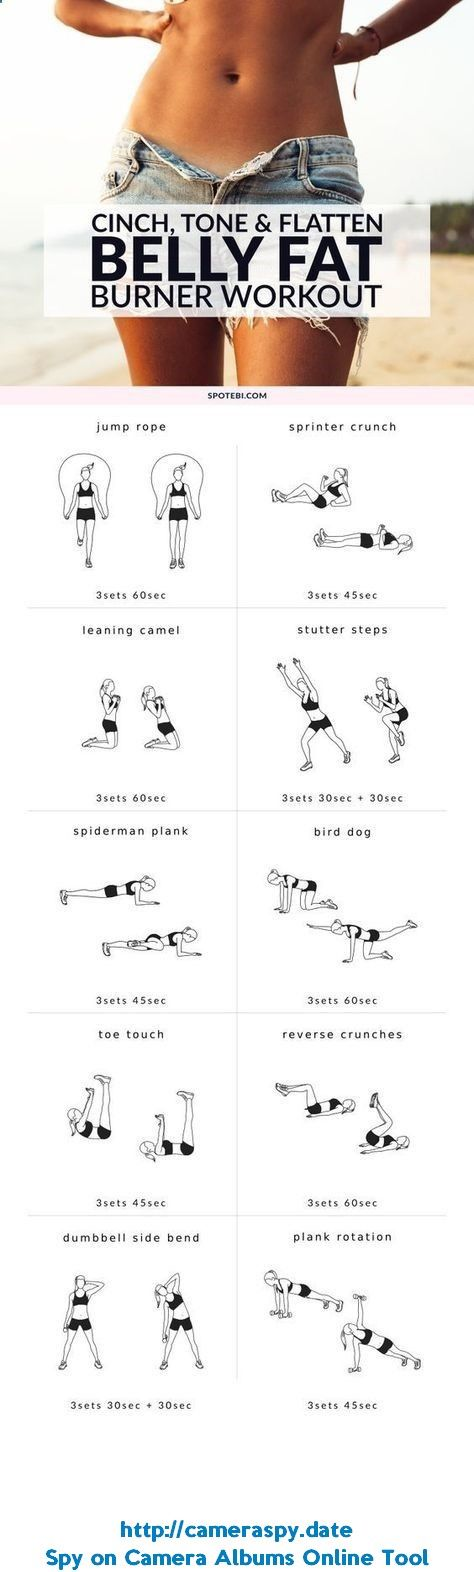 See more here ► www.youtube.com/... Tags: tips for teens to lose weight, tips for losing weight, good tips for losing weight fast - Flatten your abs and blast calories with these 10 moves! A belly fat burner workout to tone up your